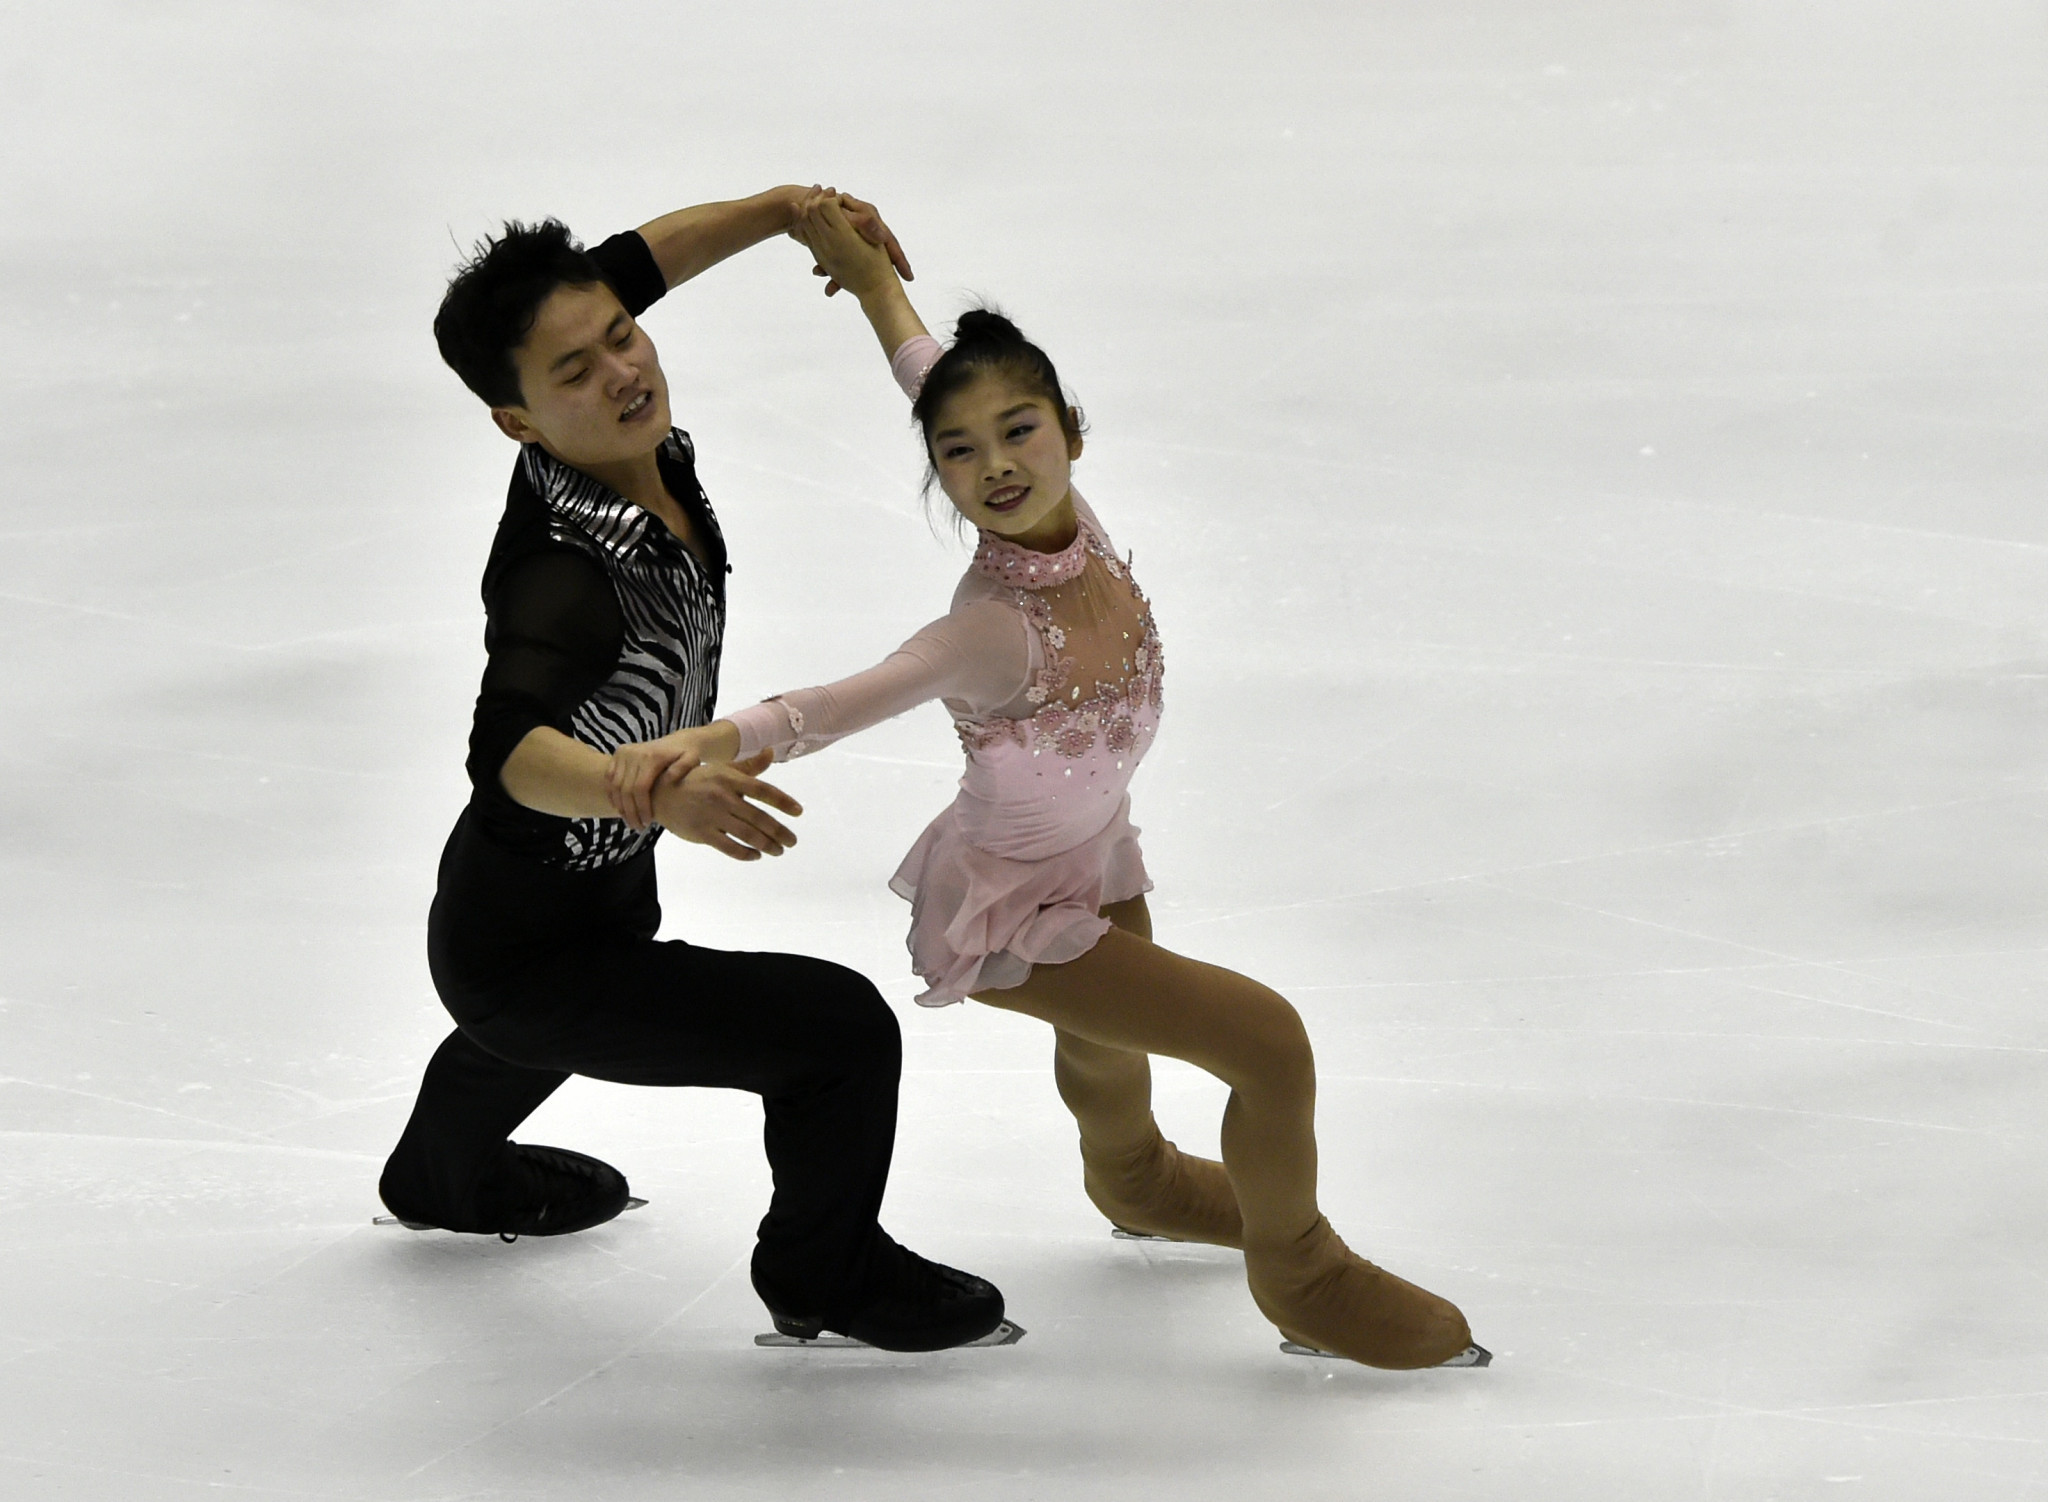 North Korea's Tae Ok Ryom and Ju Sik Kim finished fifth at the Nebelhorn Trophy in Oberstdorf to earn a place at Pyeongchang 2018 ©Getty Images